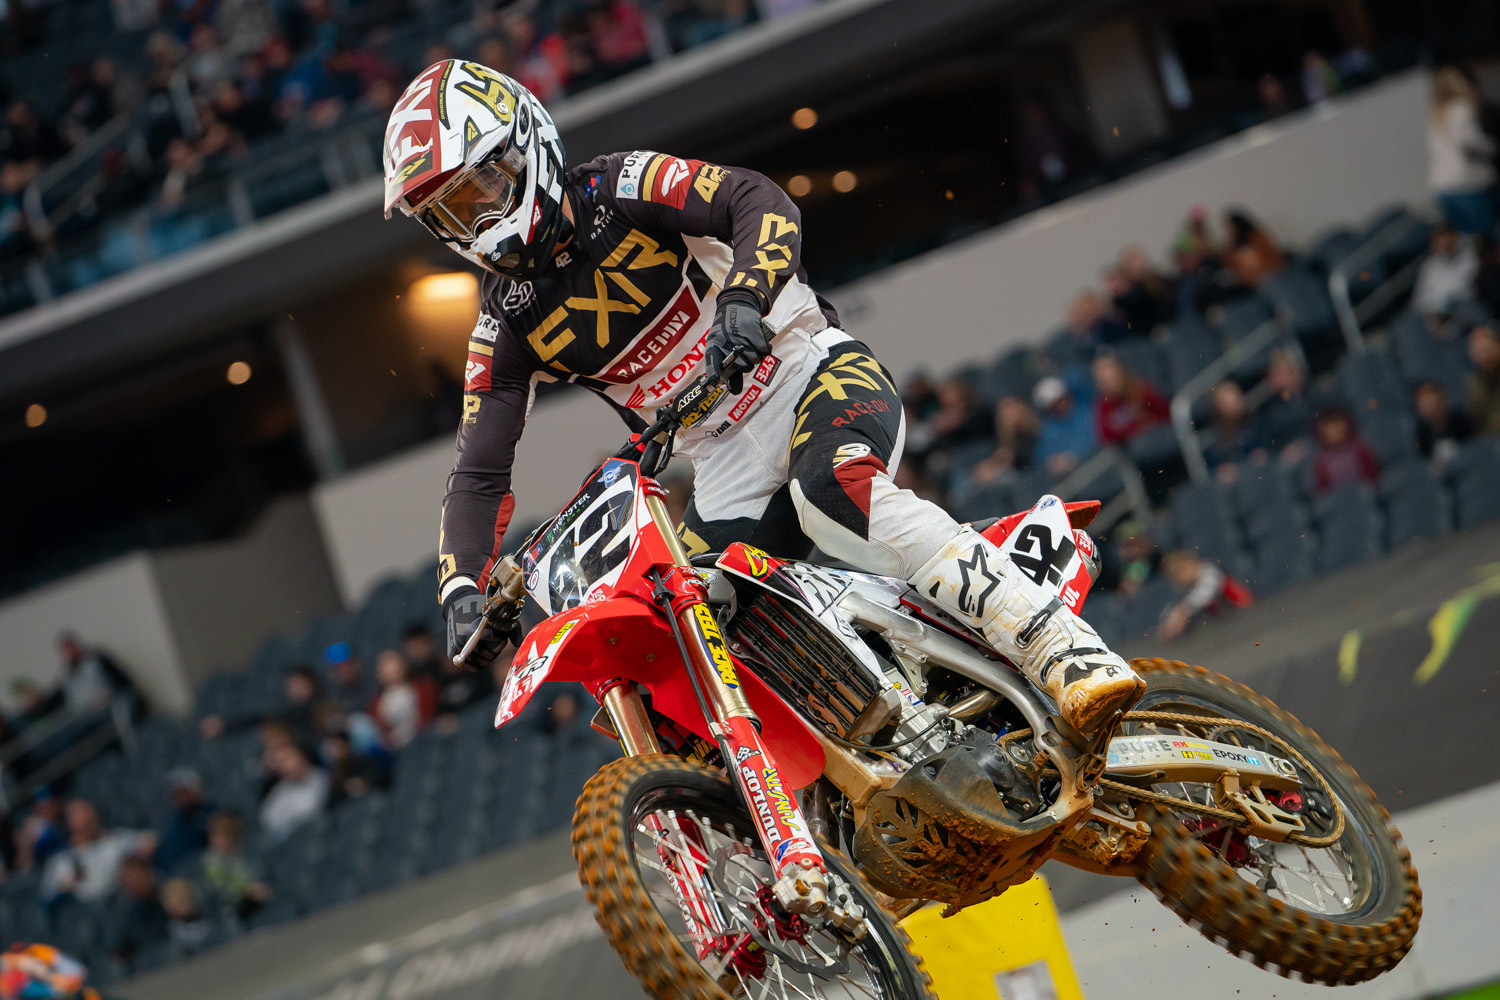 2020-ARLINGTON-SUPERCROSS_KICKSTART_0041